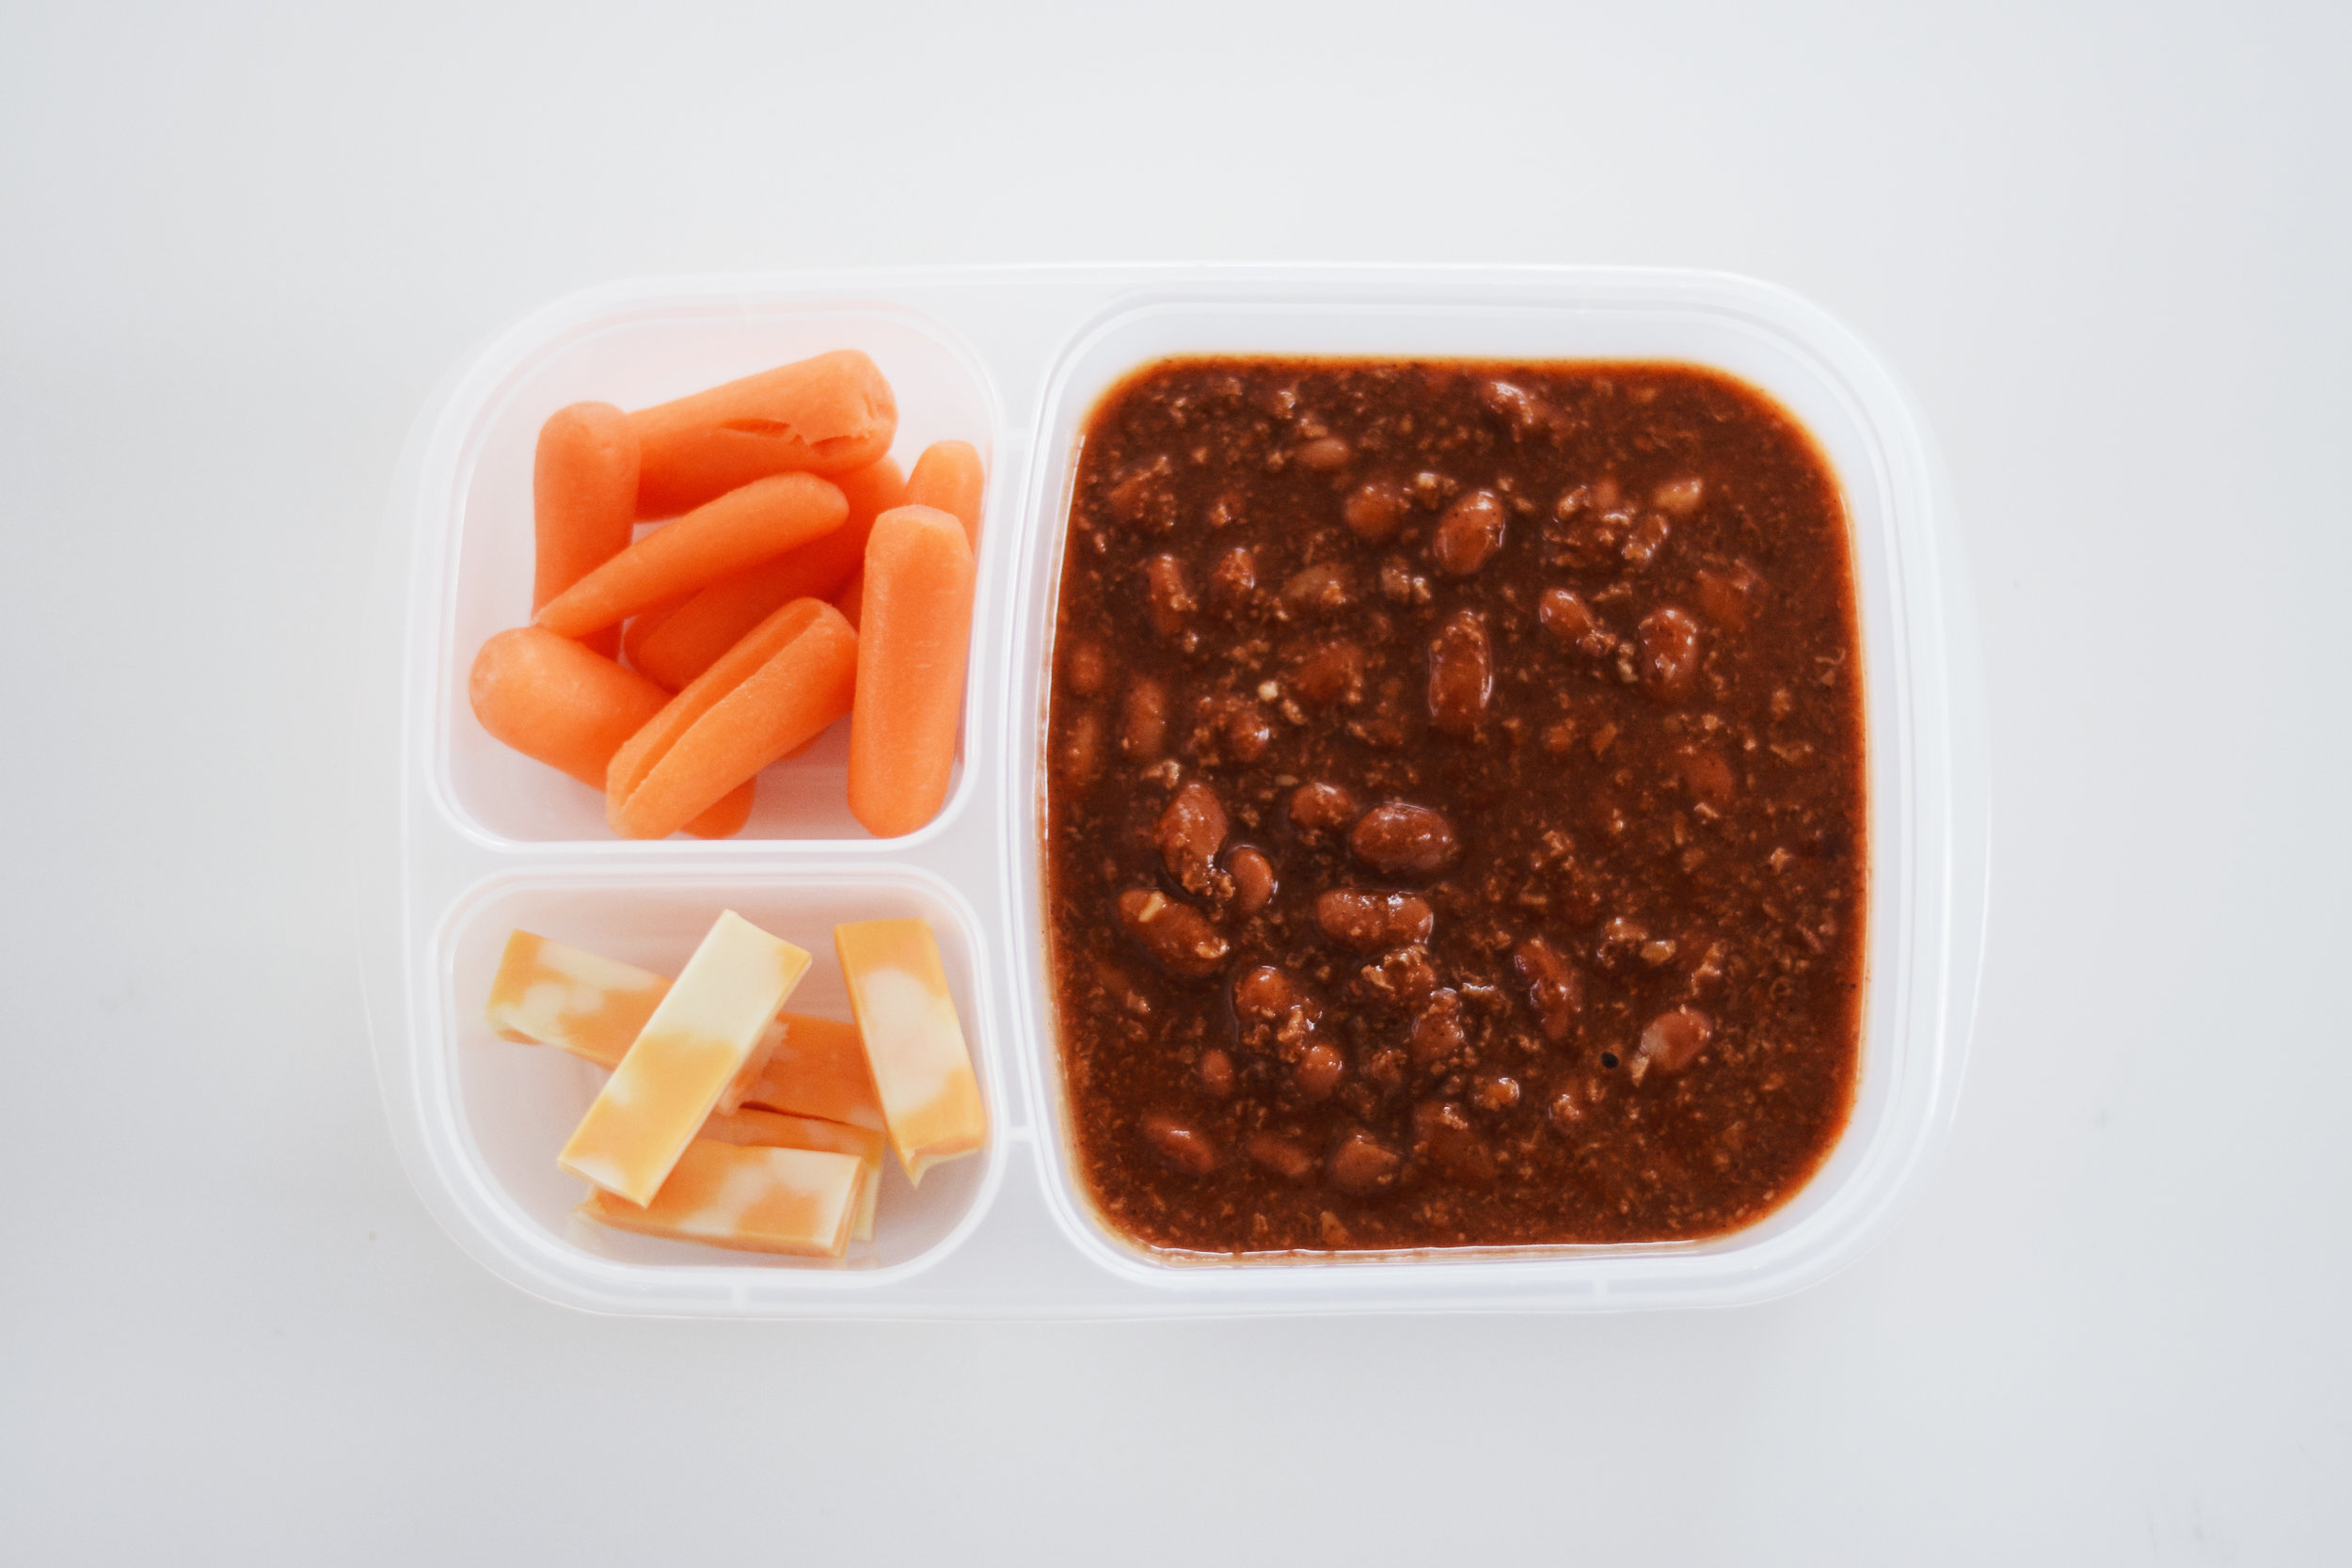 lunches7.jpg